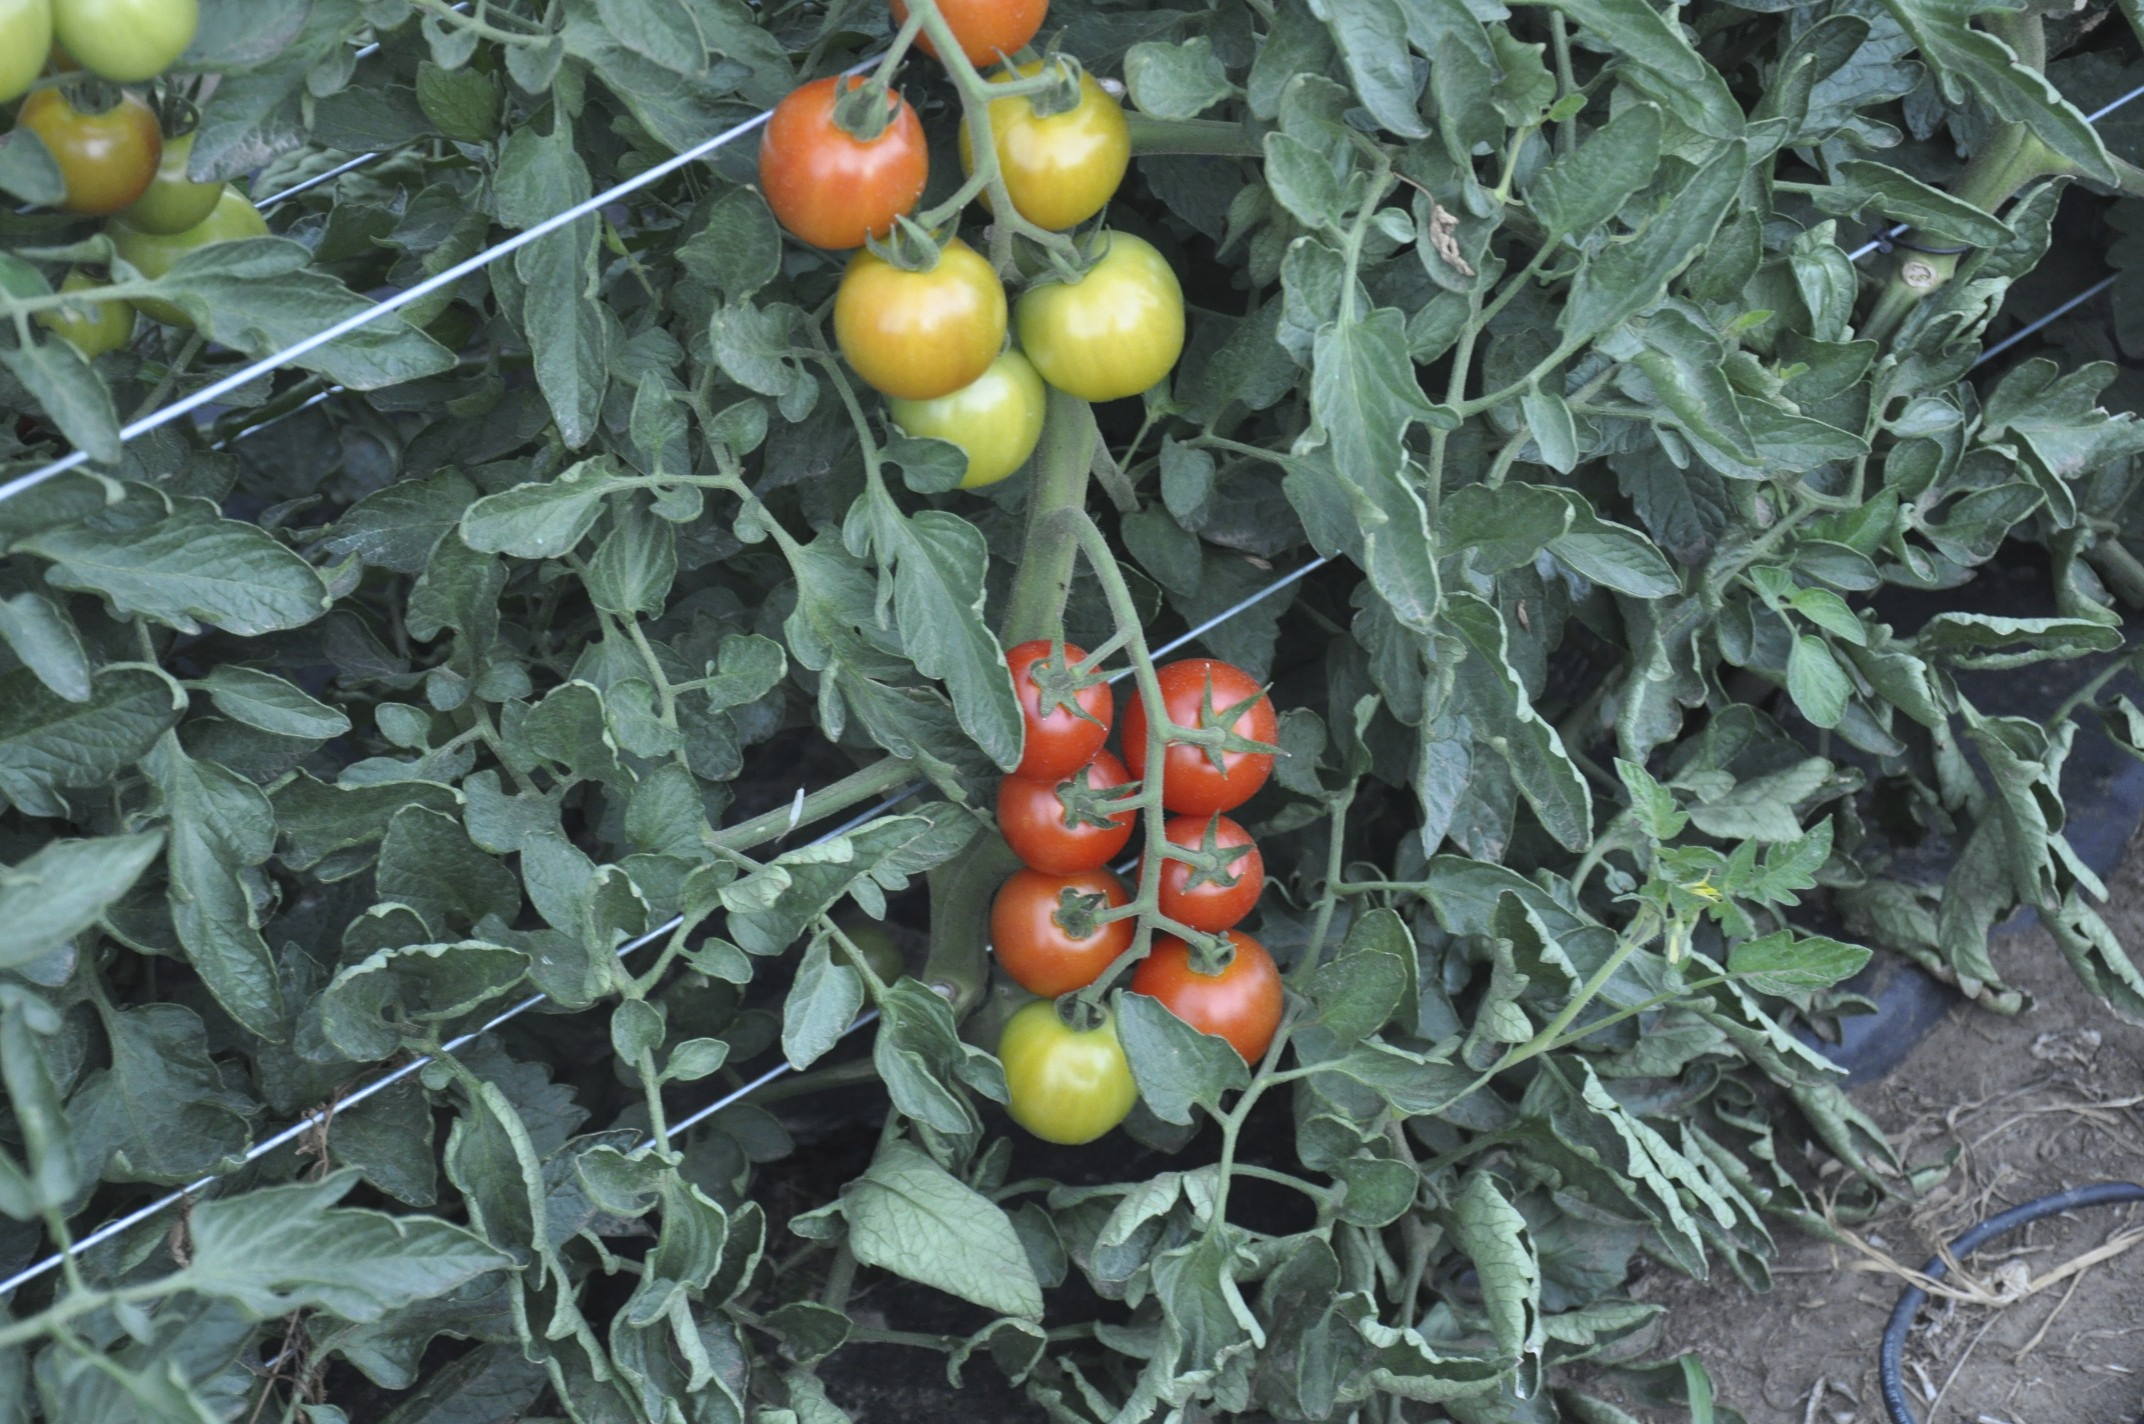 List of tomato cultivars - Wikipedia